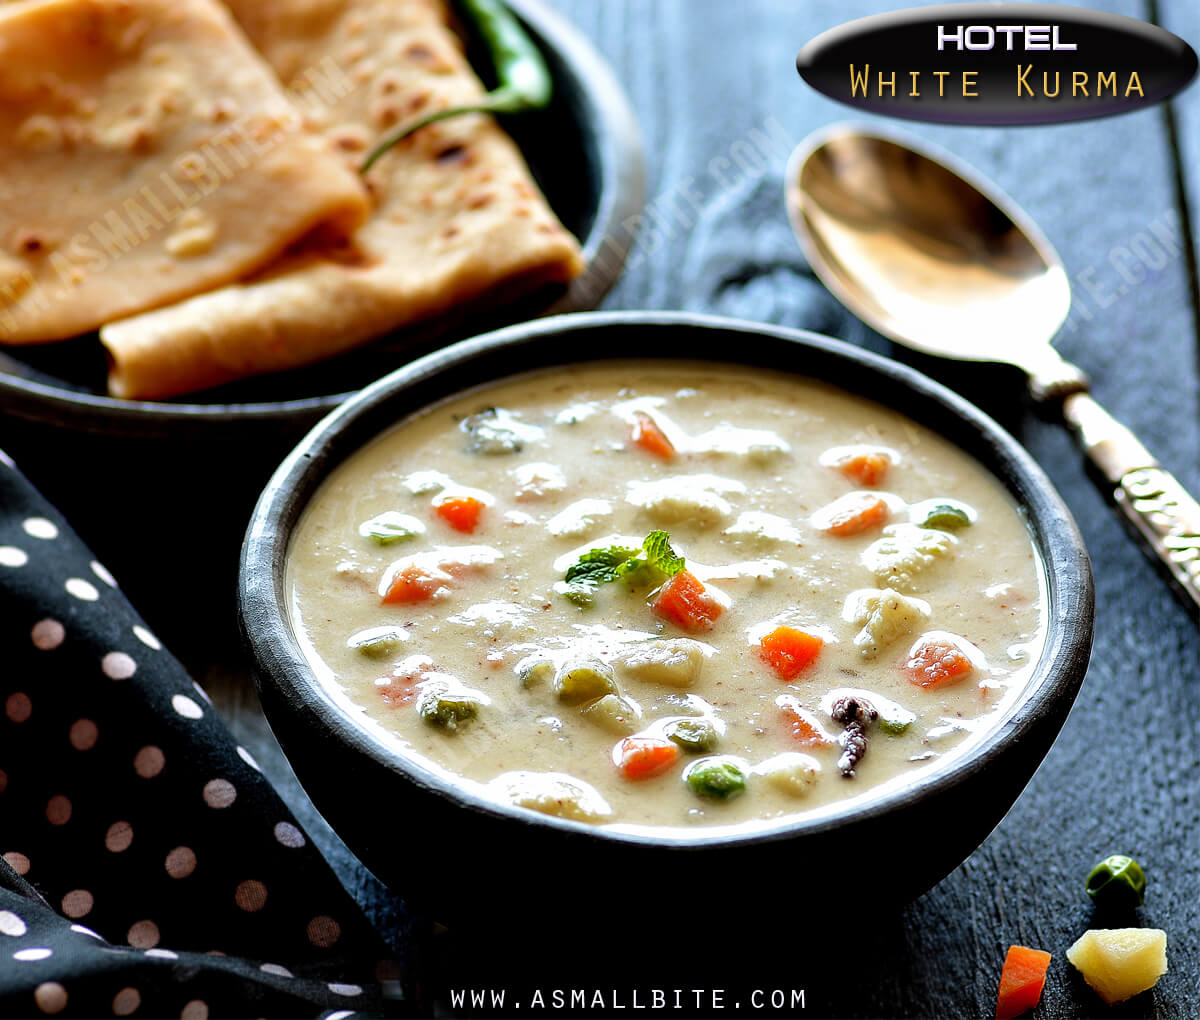 Hotel White Kurma Recipe